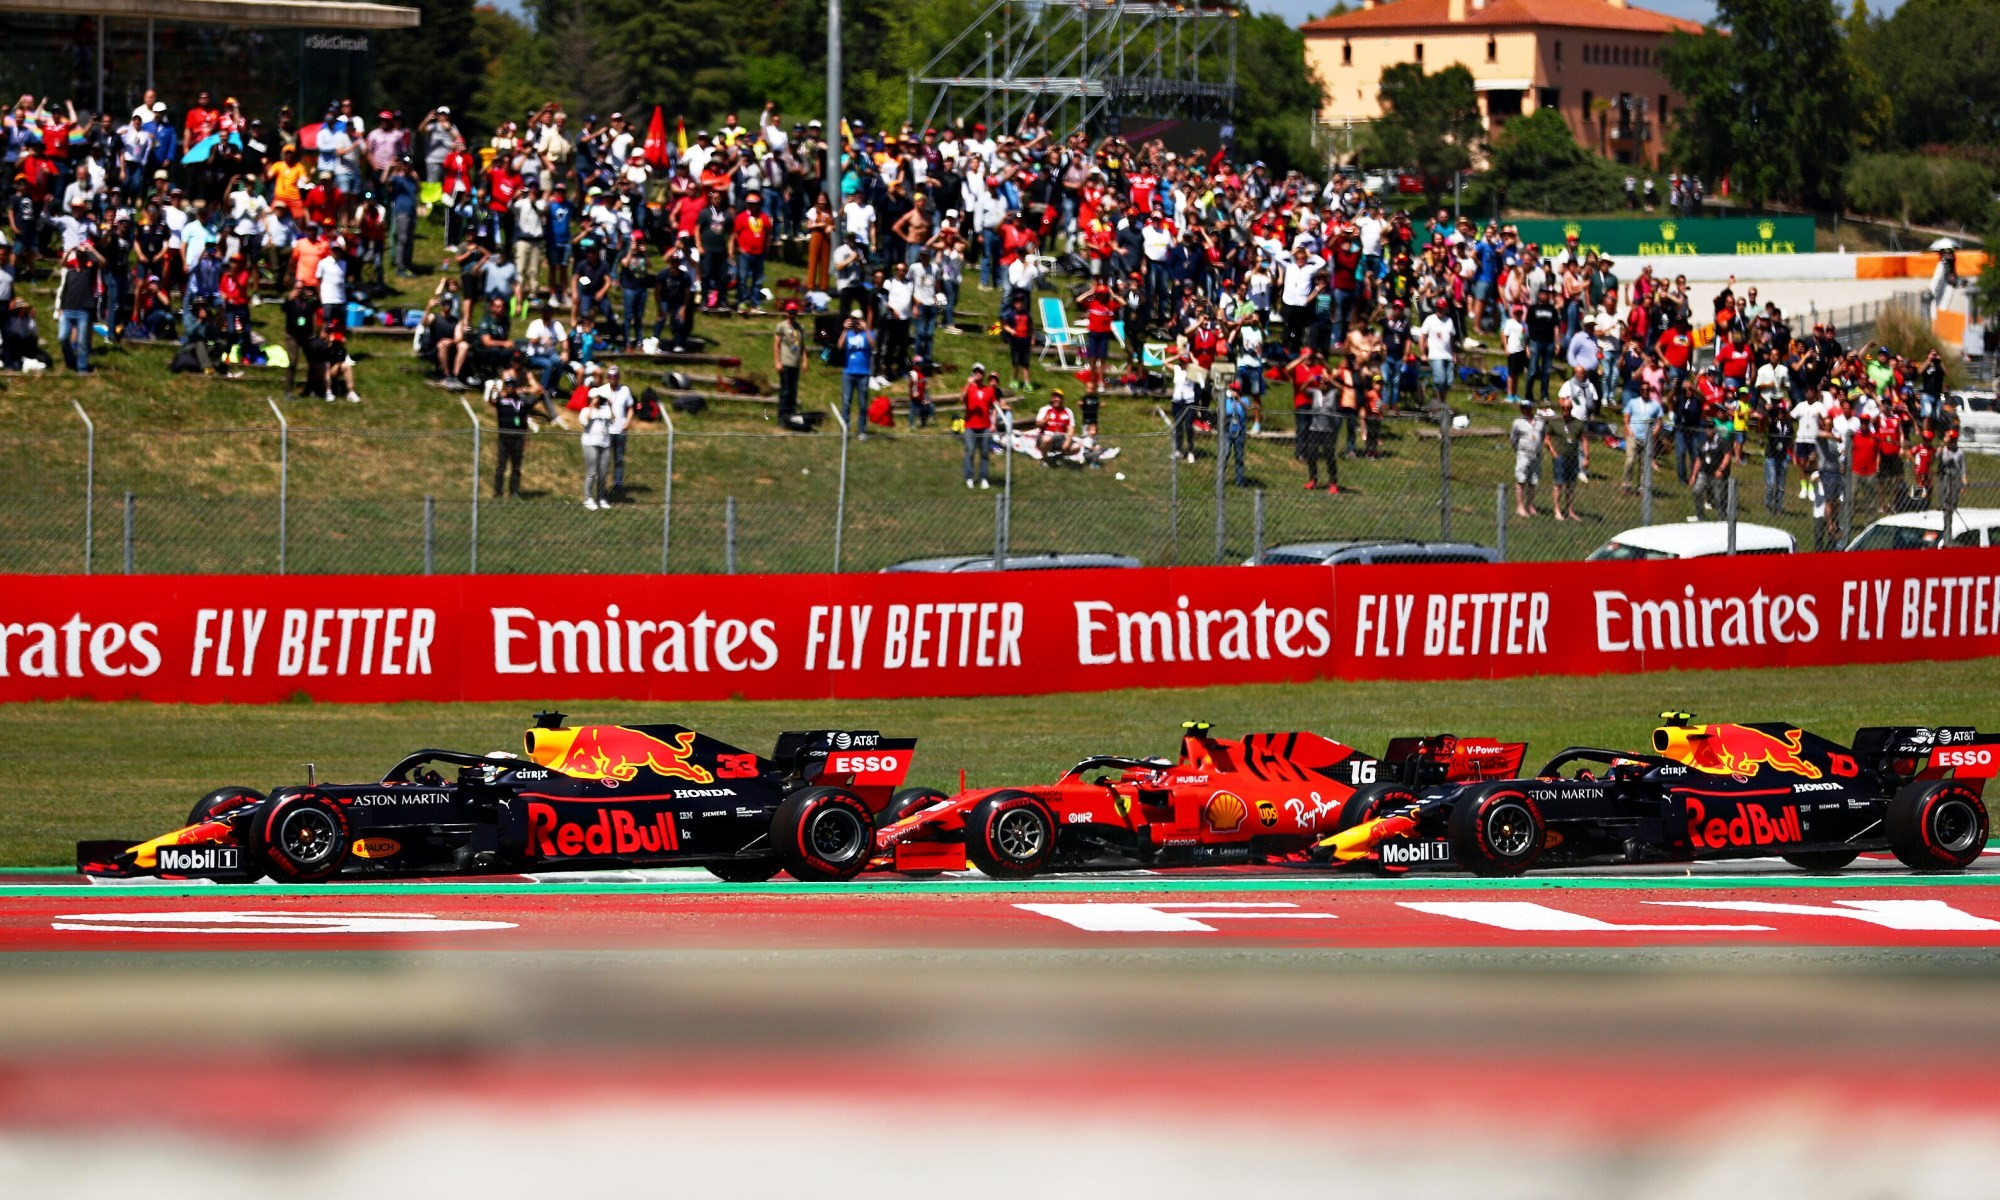 Red Bull Racing took the fight to Ferrari in Spain